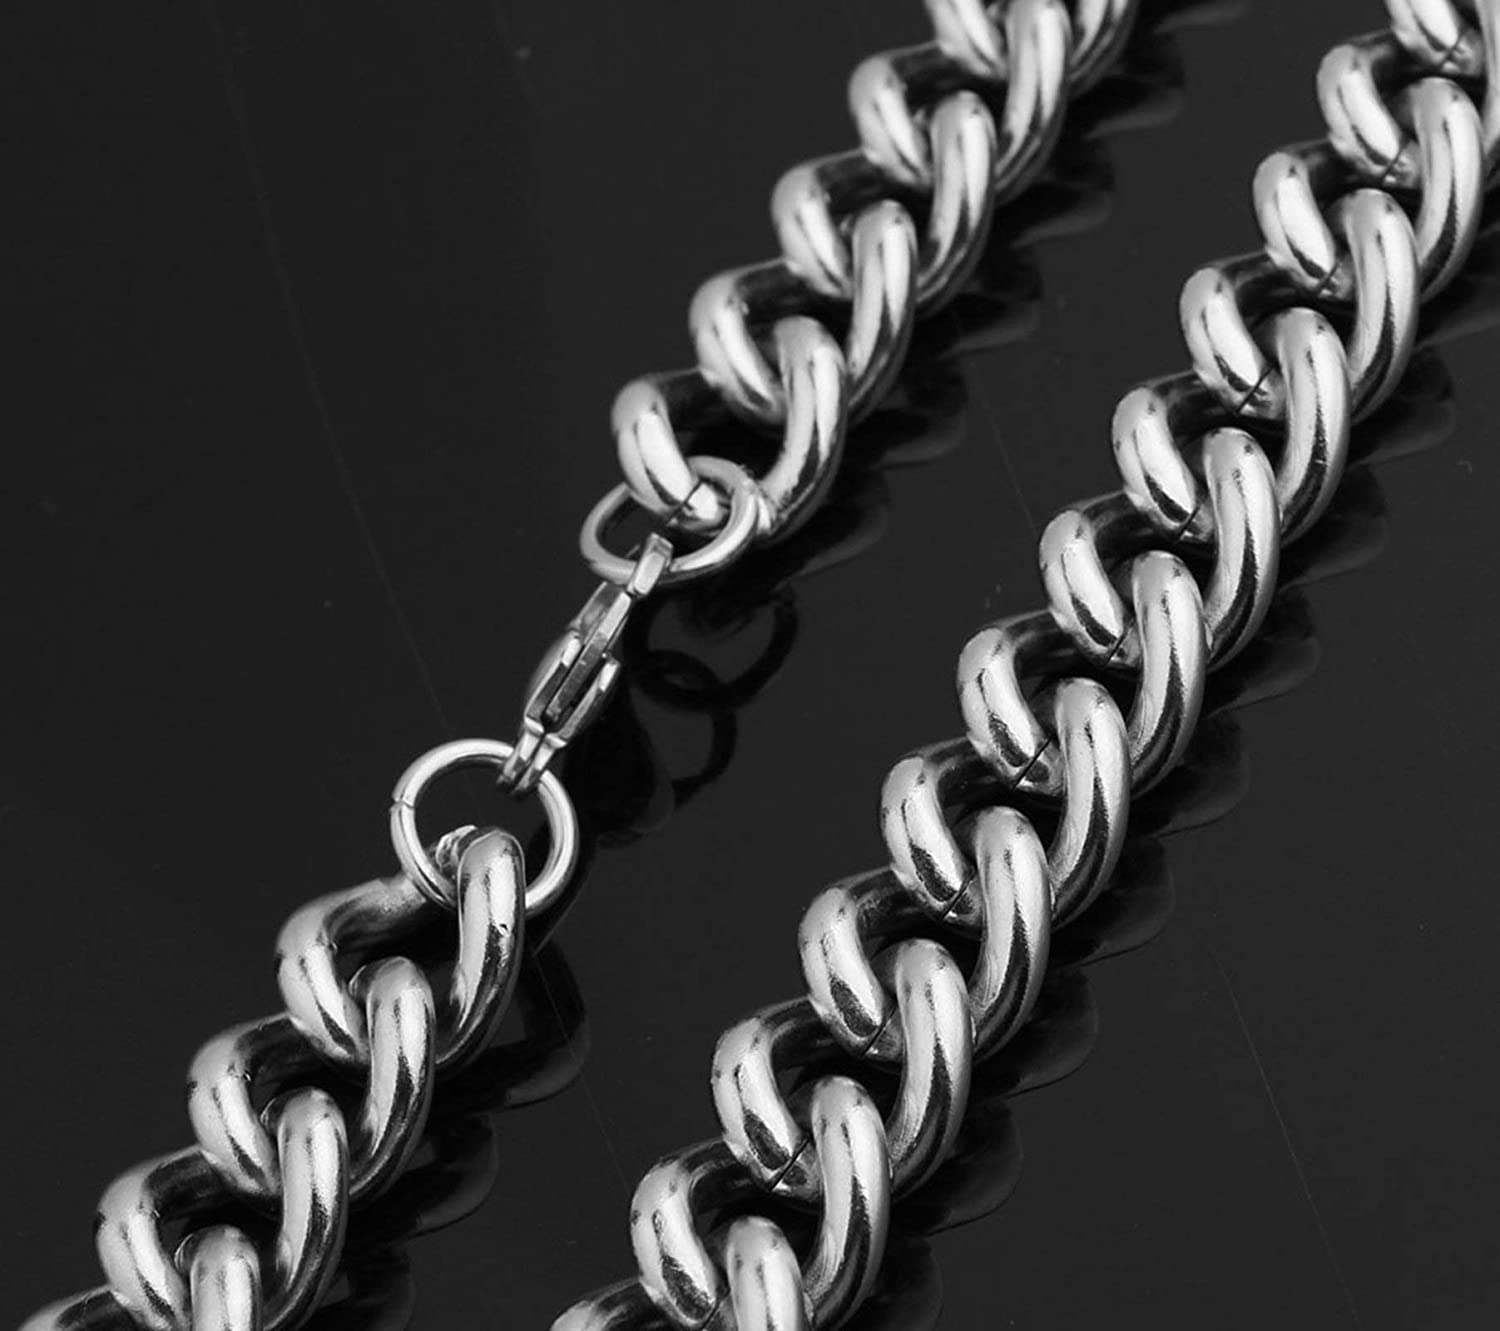 ANAZOZ Stainless Steel Necklace Punk Biker Silver Curb Chain Necklace for Men